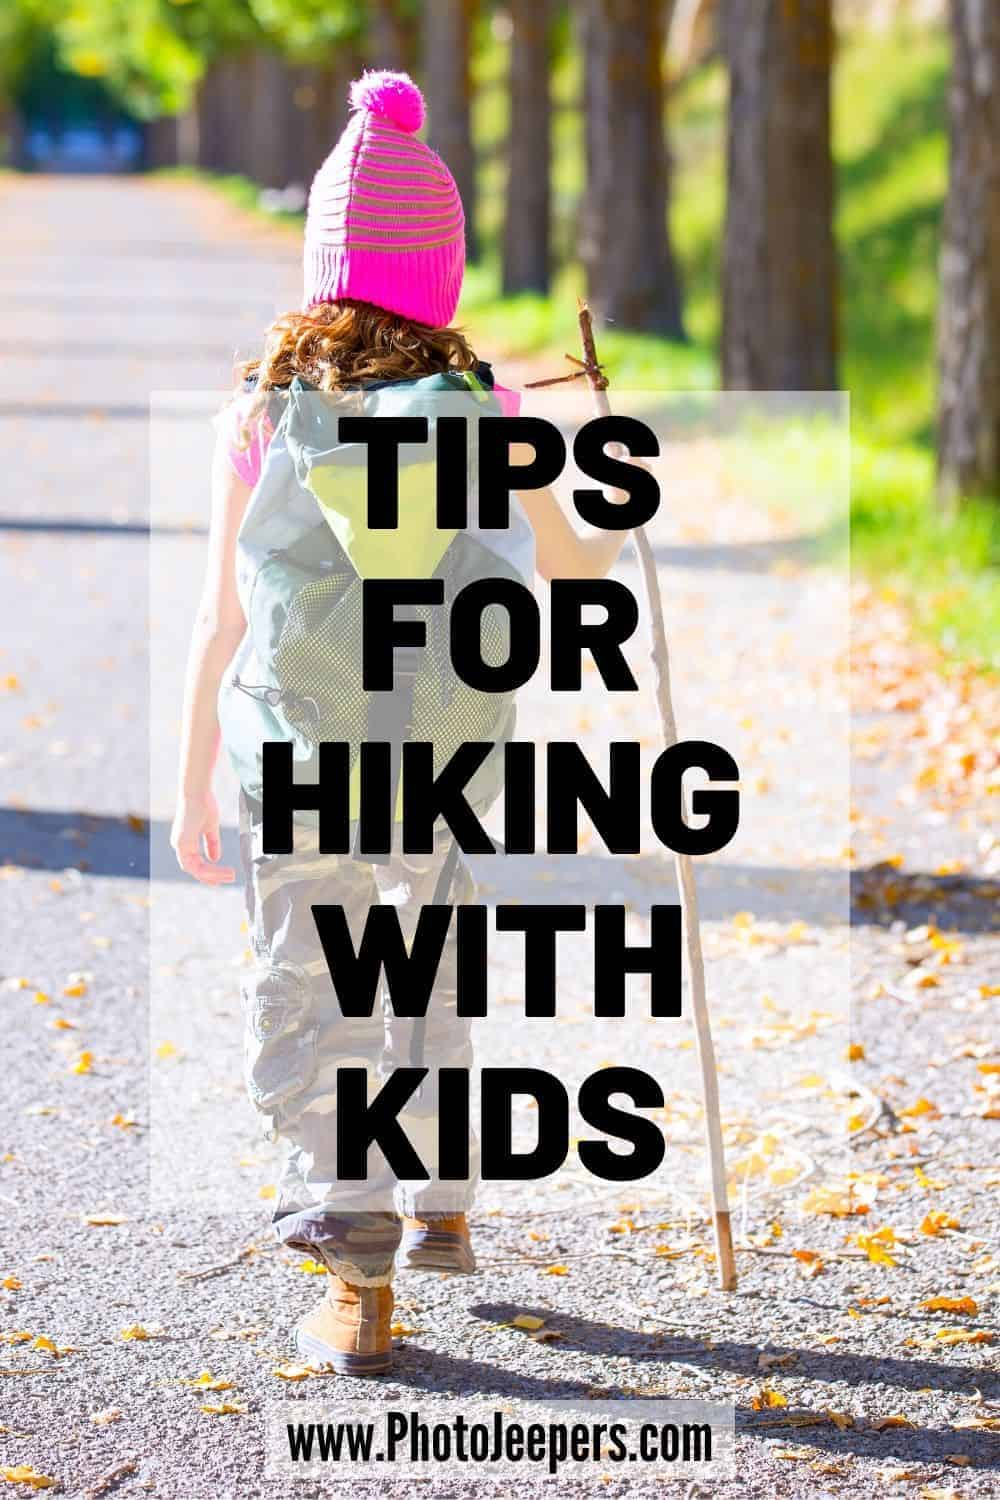 Tips for hiking with kids: Hiking gear for kids | Planning for the hike with kids | Hiking close to home with kids | Make hiking interesting for kids | Kids hiking activities #hiking #familytravel #outdoors #photojeepers